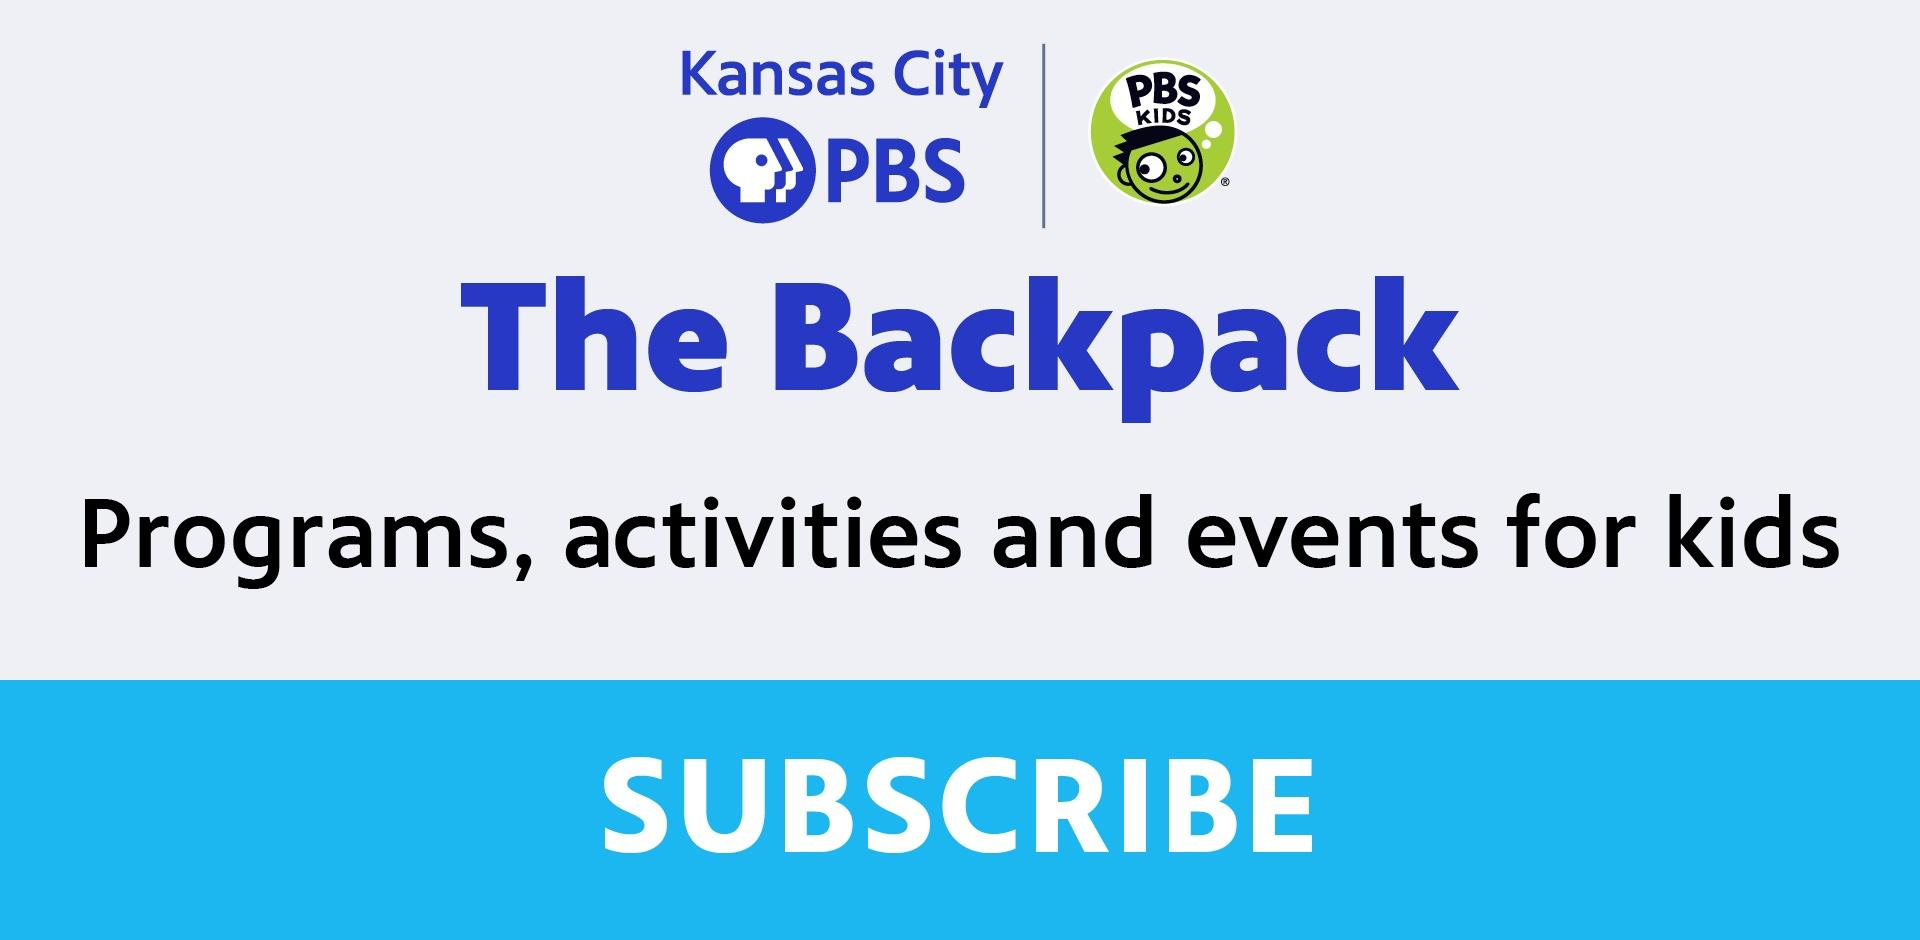 Kansas City PBS The Backpack Programs Activities and events for kids - Subscribe